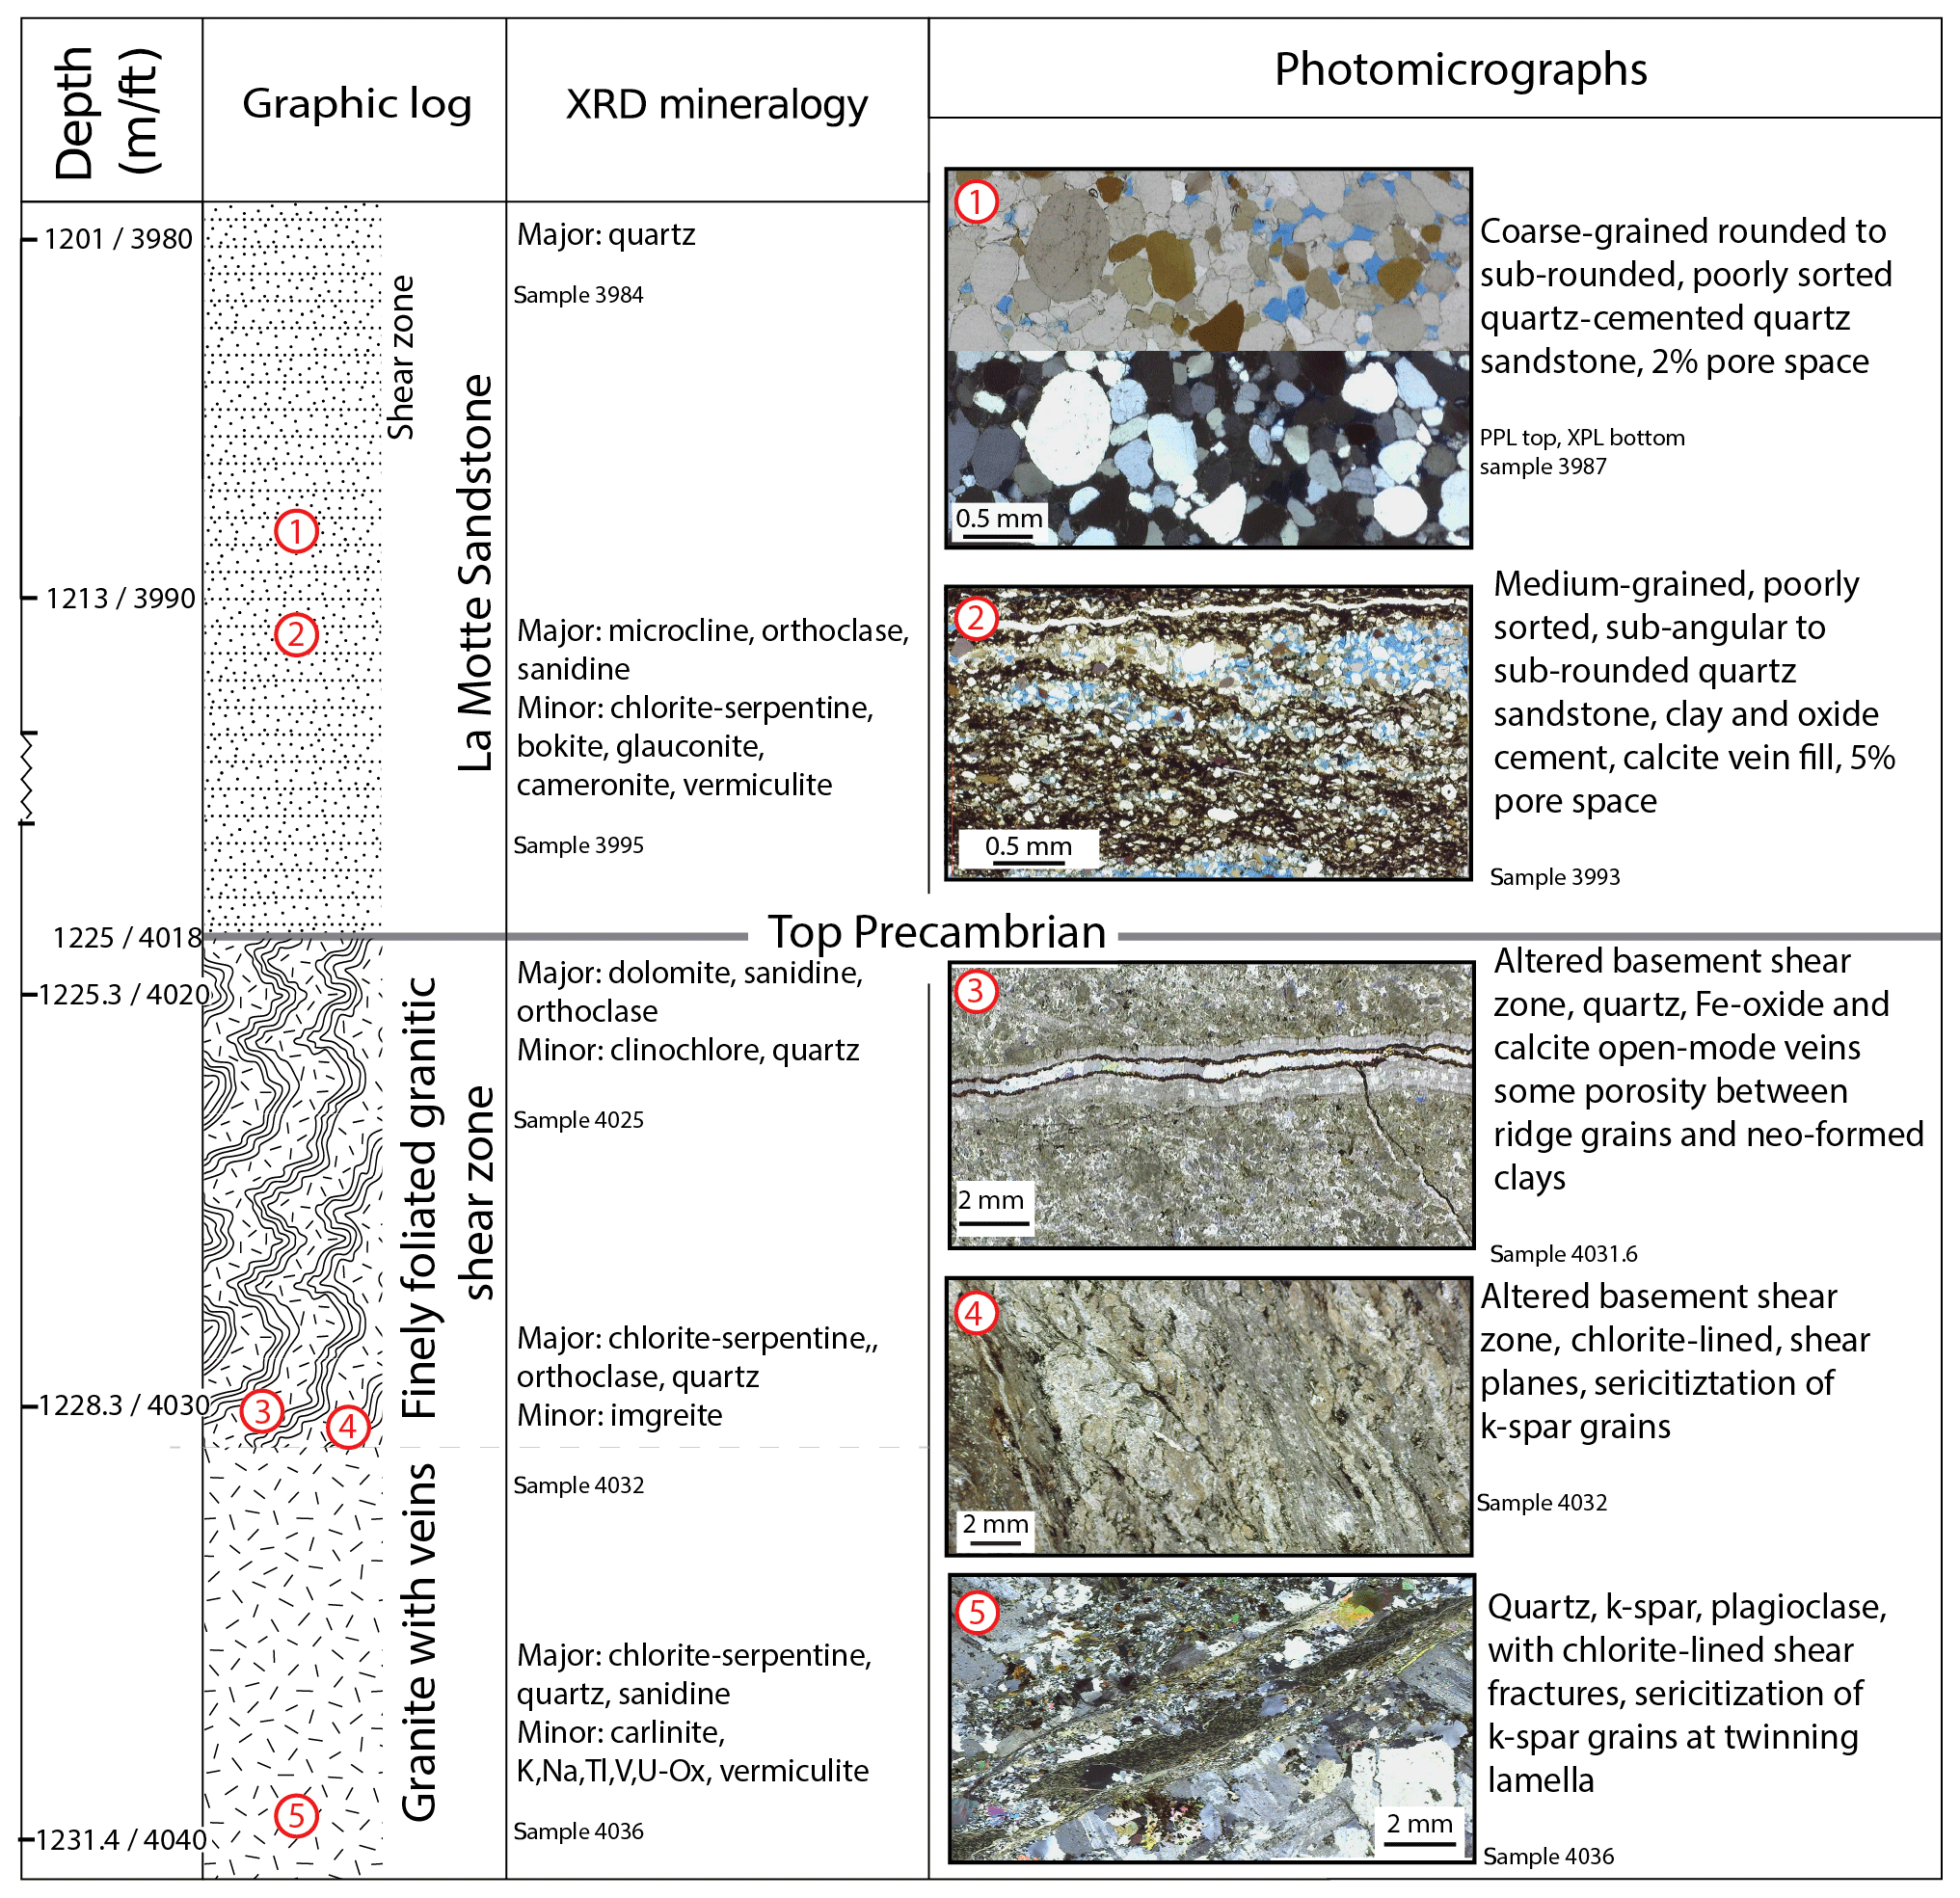 Se Geologic Characterization Of Nonconformities Using Outcrop And Core Analogs Hydrologic Implications For Injection Induced Seismicity